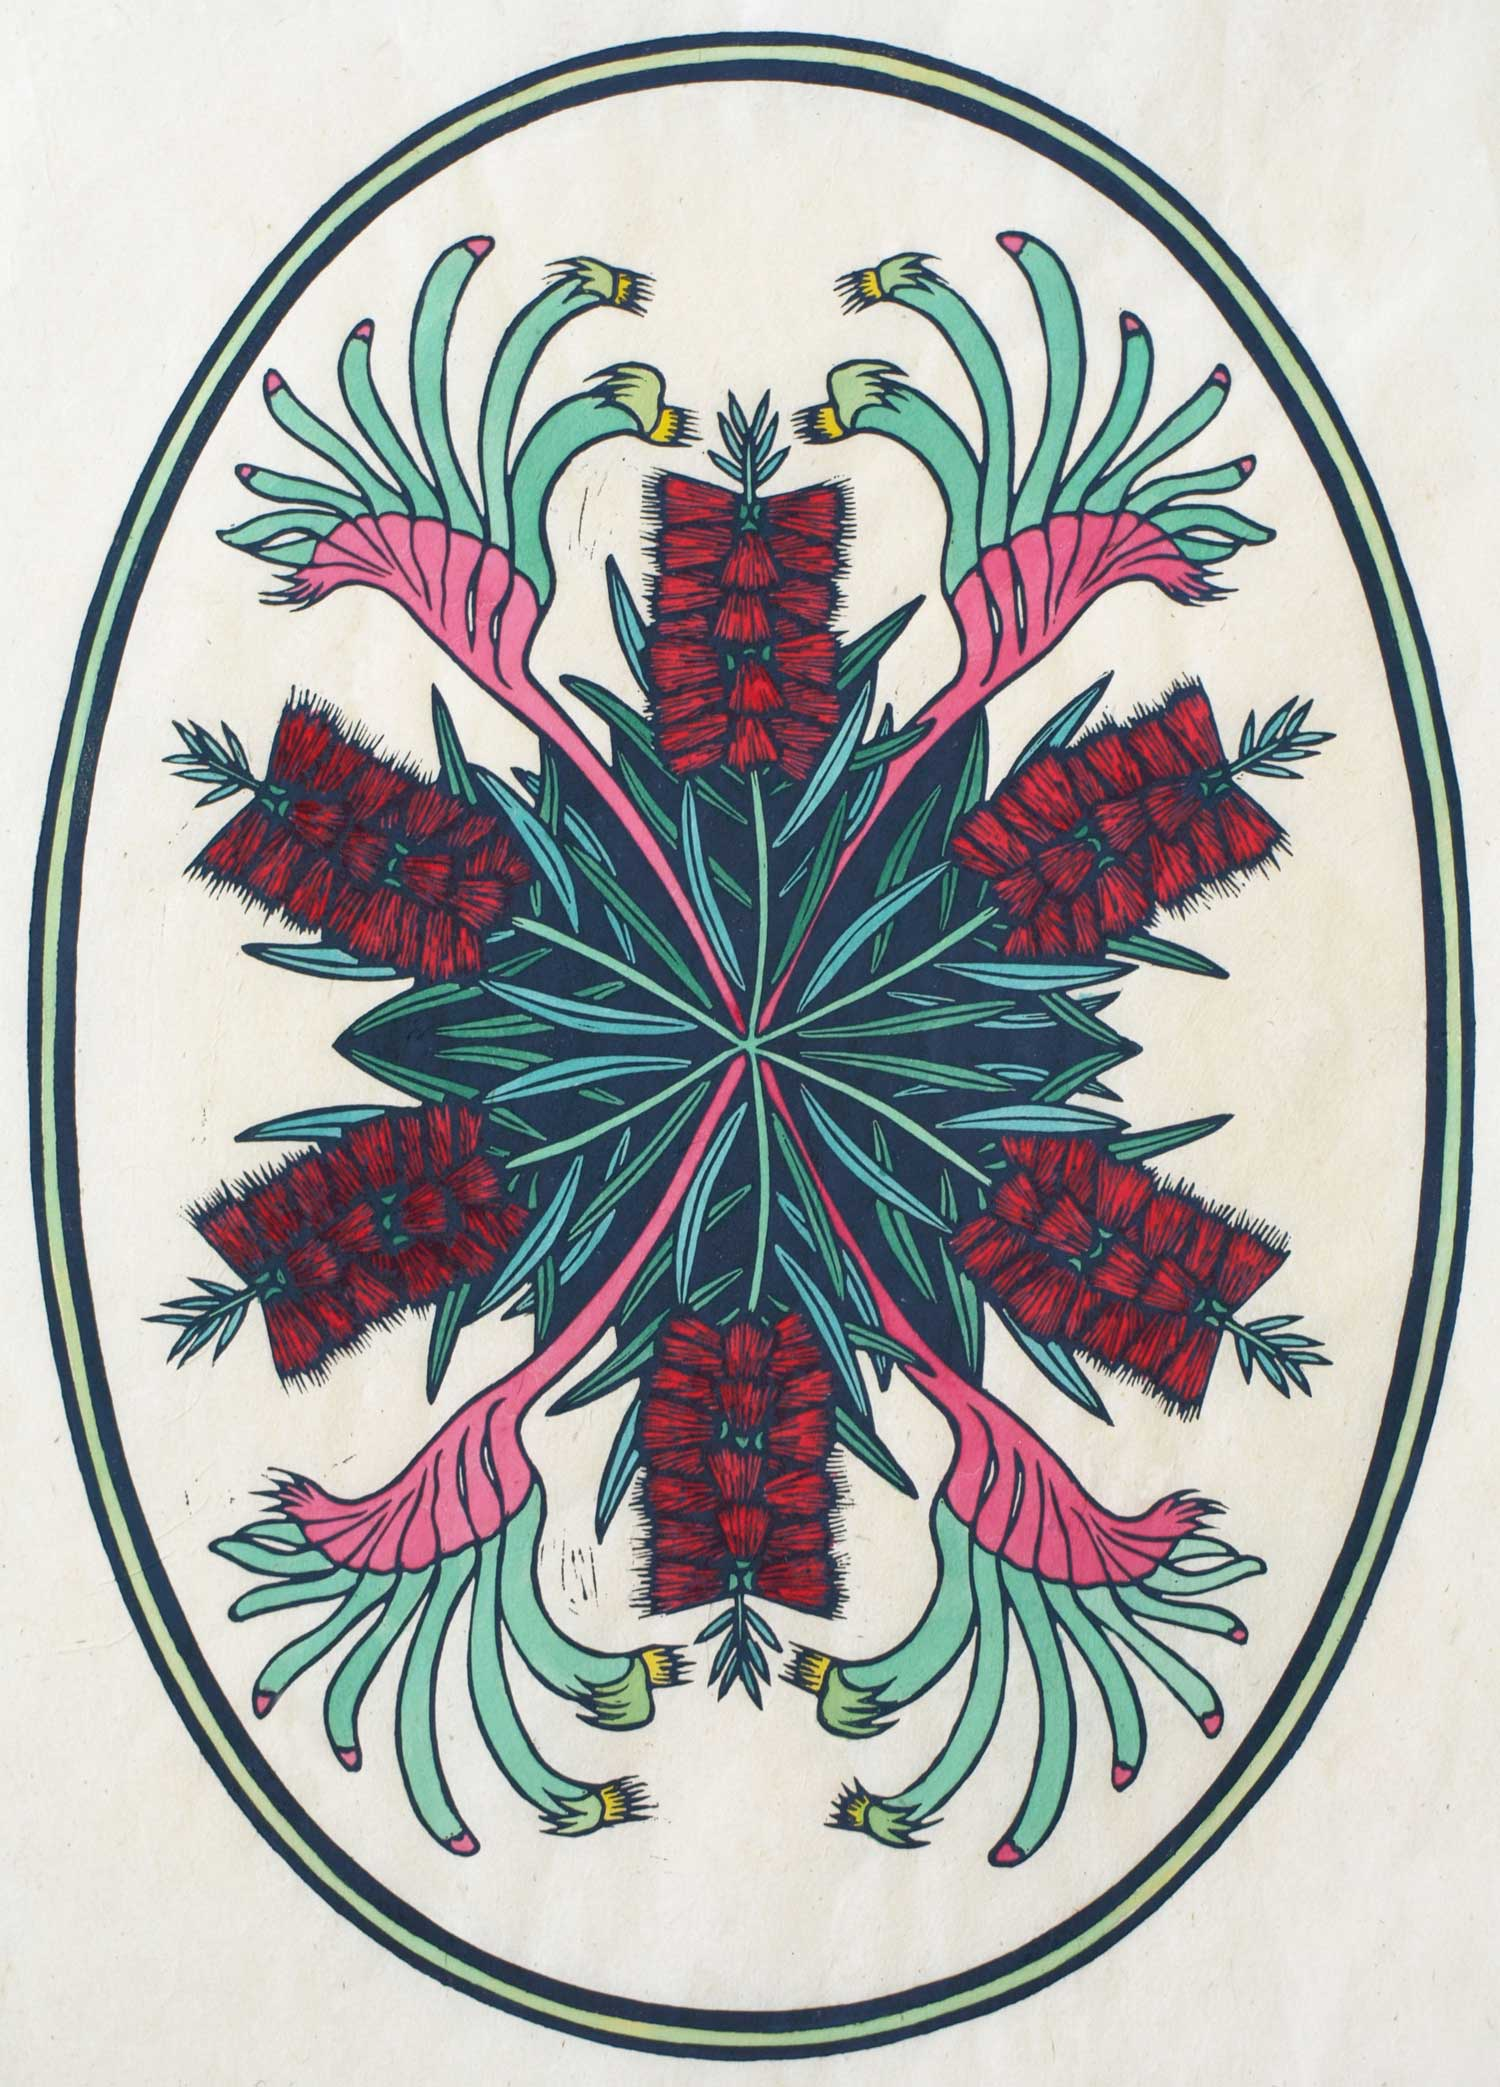 KANGAROO PAW & BOTTLE BRUSH  54 X 39 CM EDITION OF 50  HAND COLOURED LINOCUT ON HANDMADE JAPANESE PAPER  $1,050